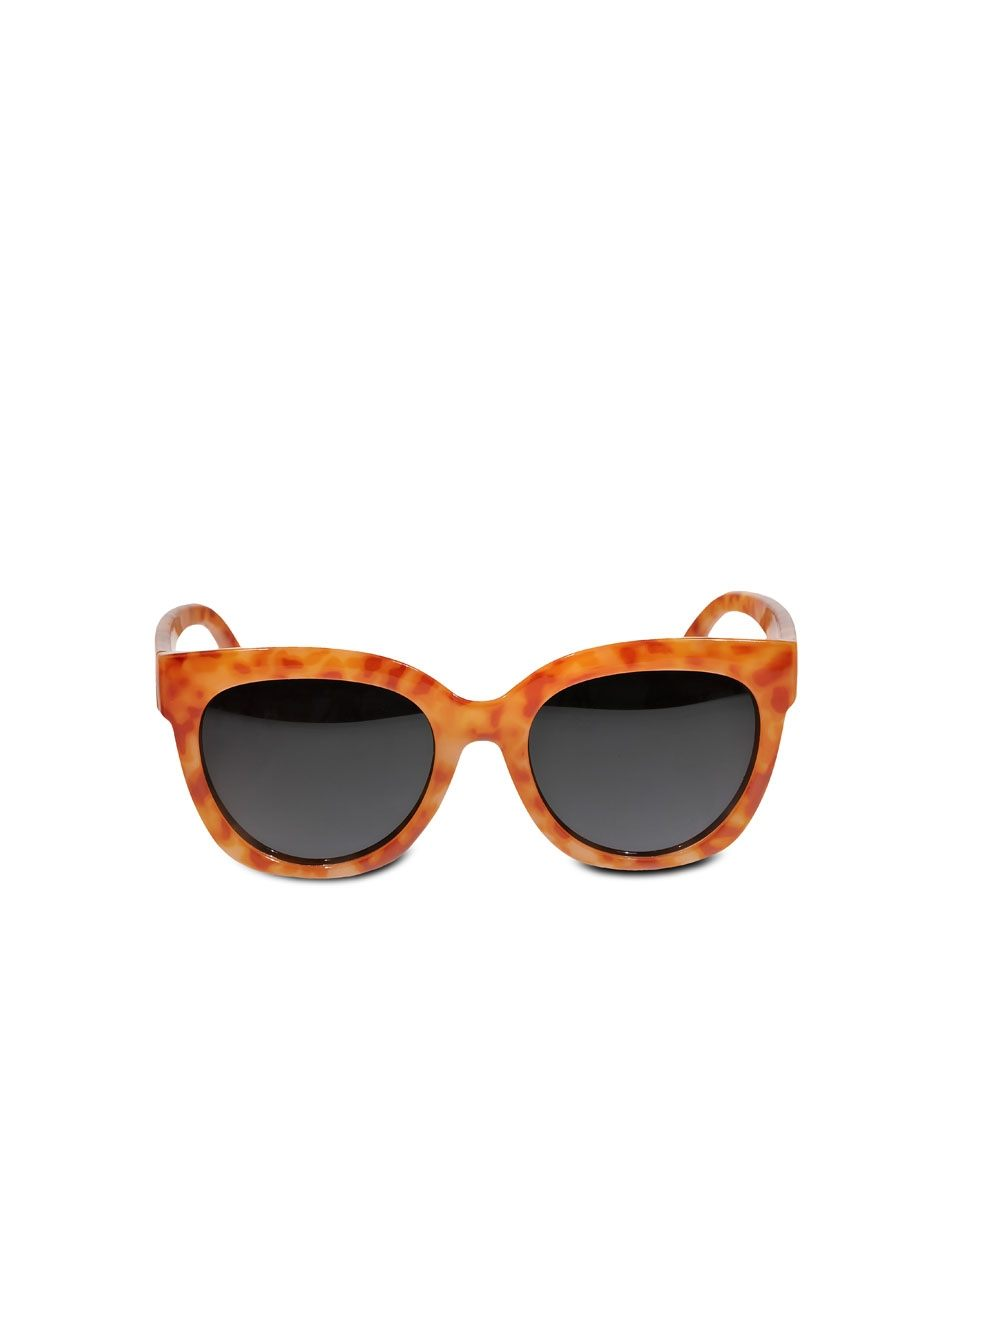 Jo Sunglasses - Turtle